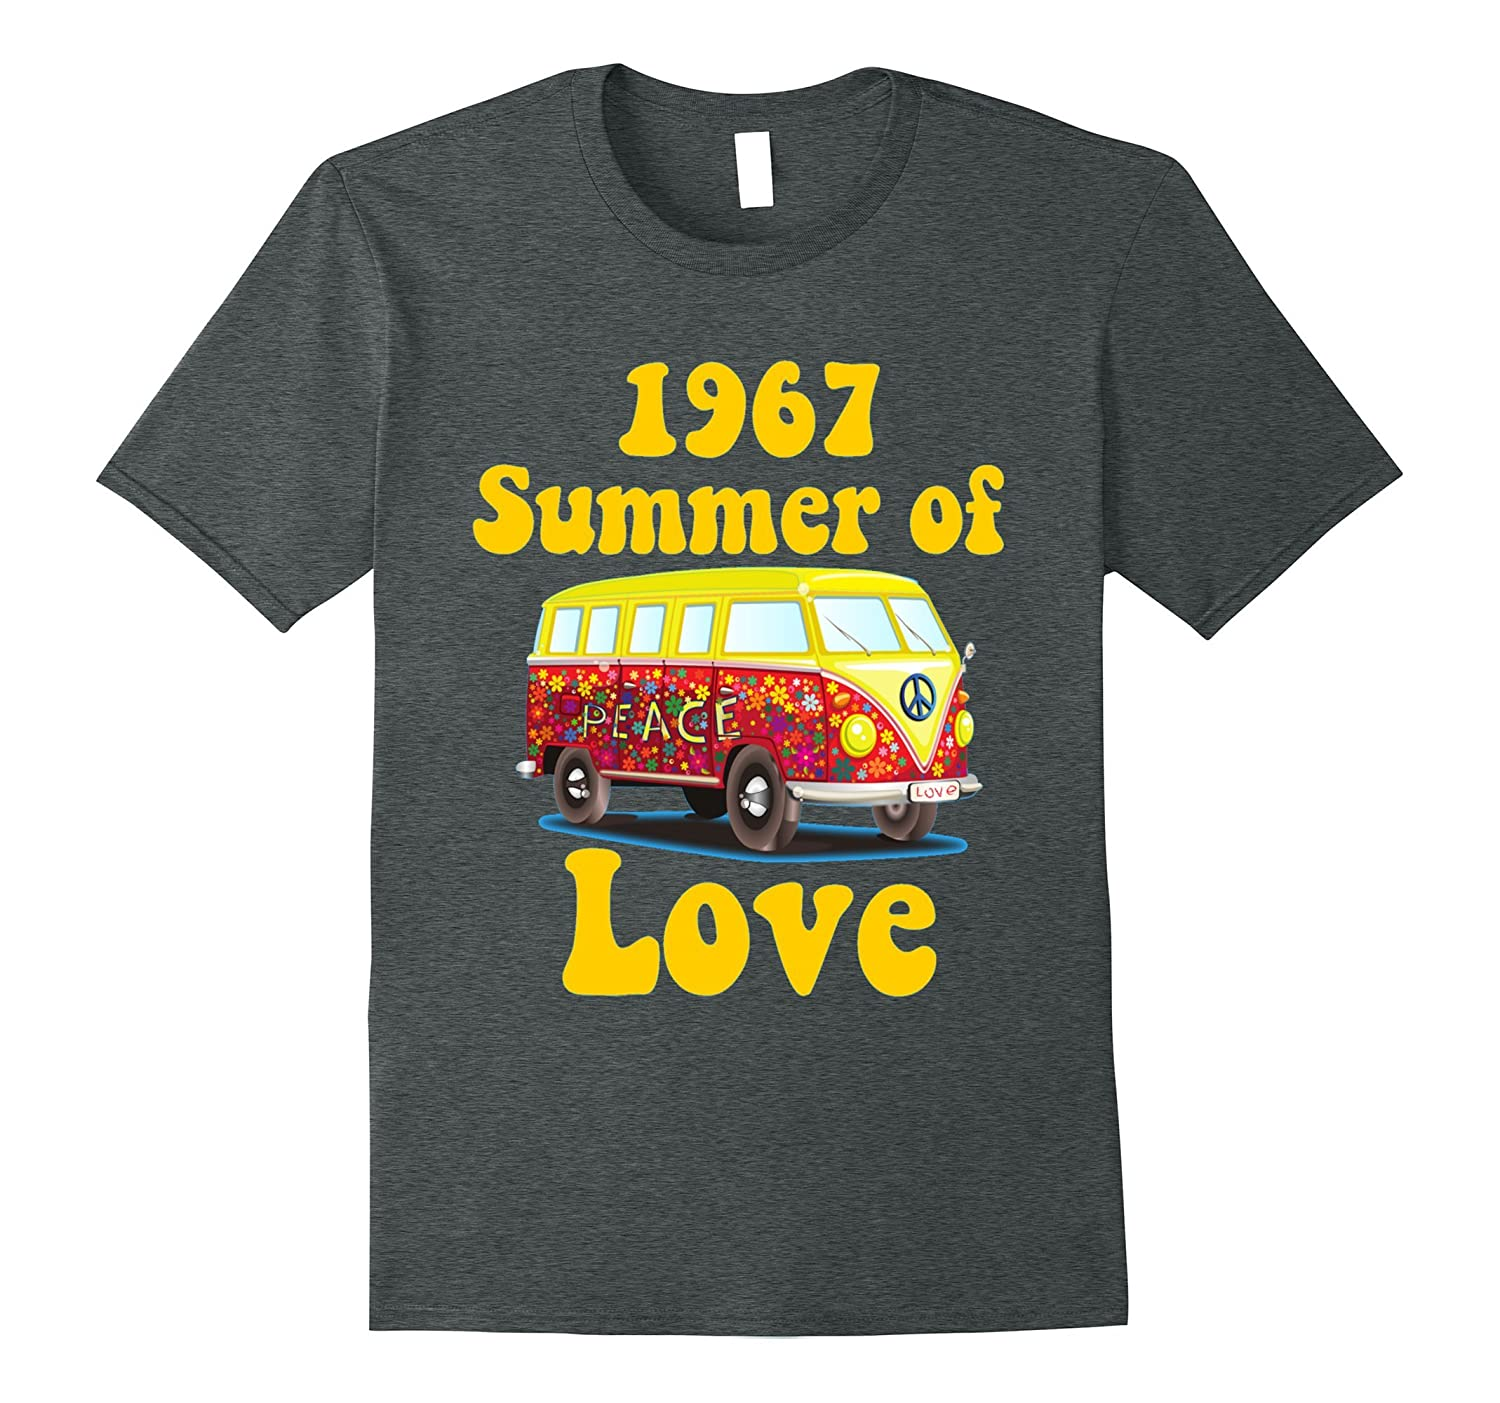 1967 Summer of Love Retro Tees Vintage Sixties Hippie Shirt-ah my shirt one gift